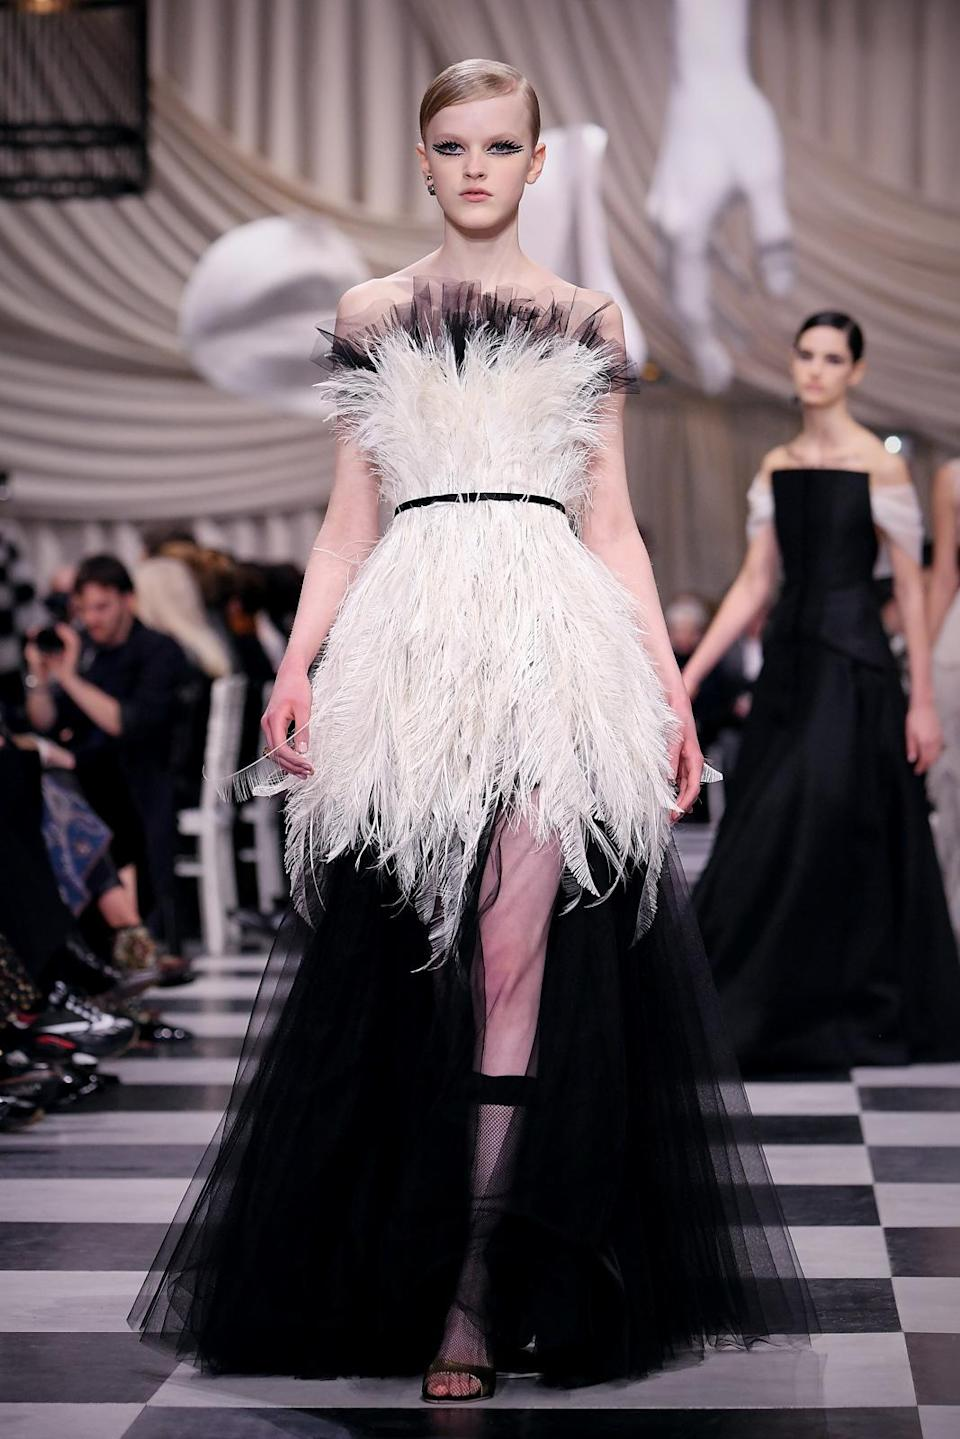 <p>A model wears a white feathered bodice with black feather trim dress from the Dior Haute Couture SS18 collection. (Photo: Getty) </p>